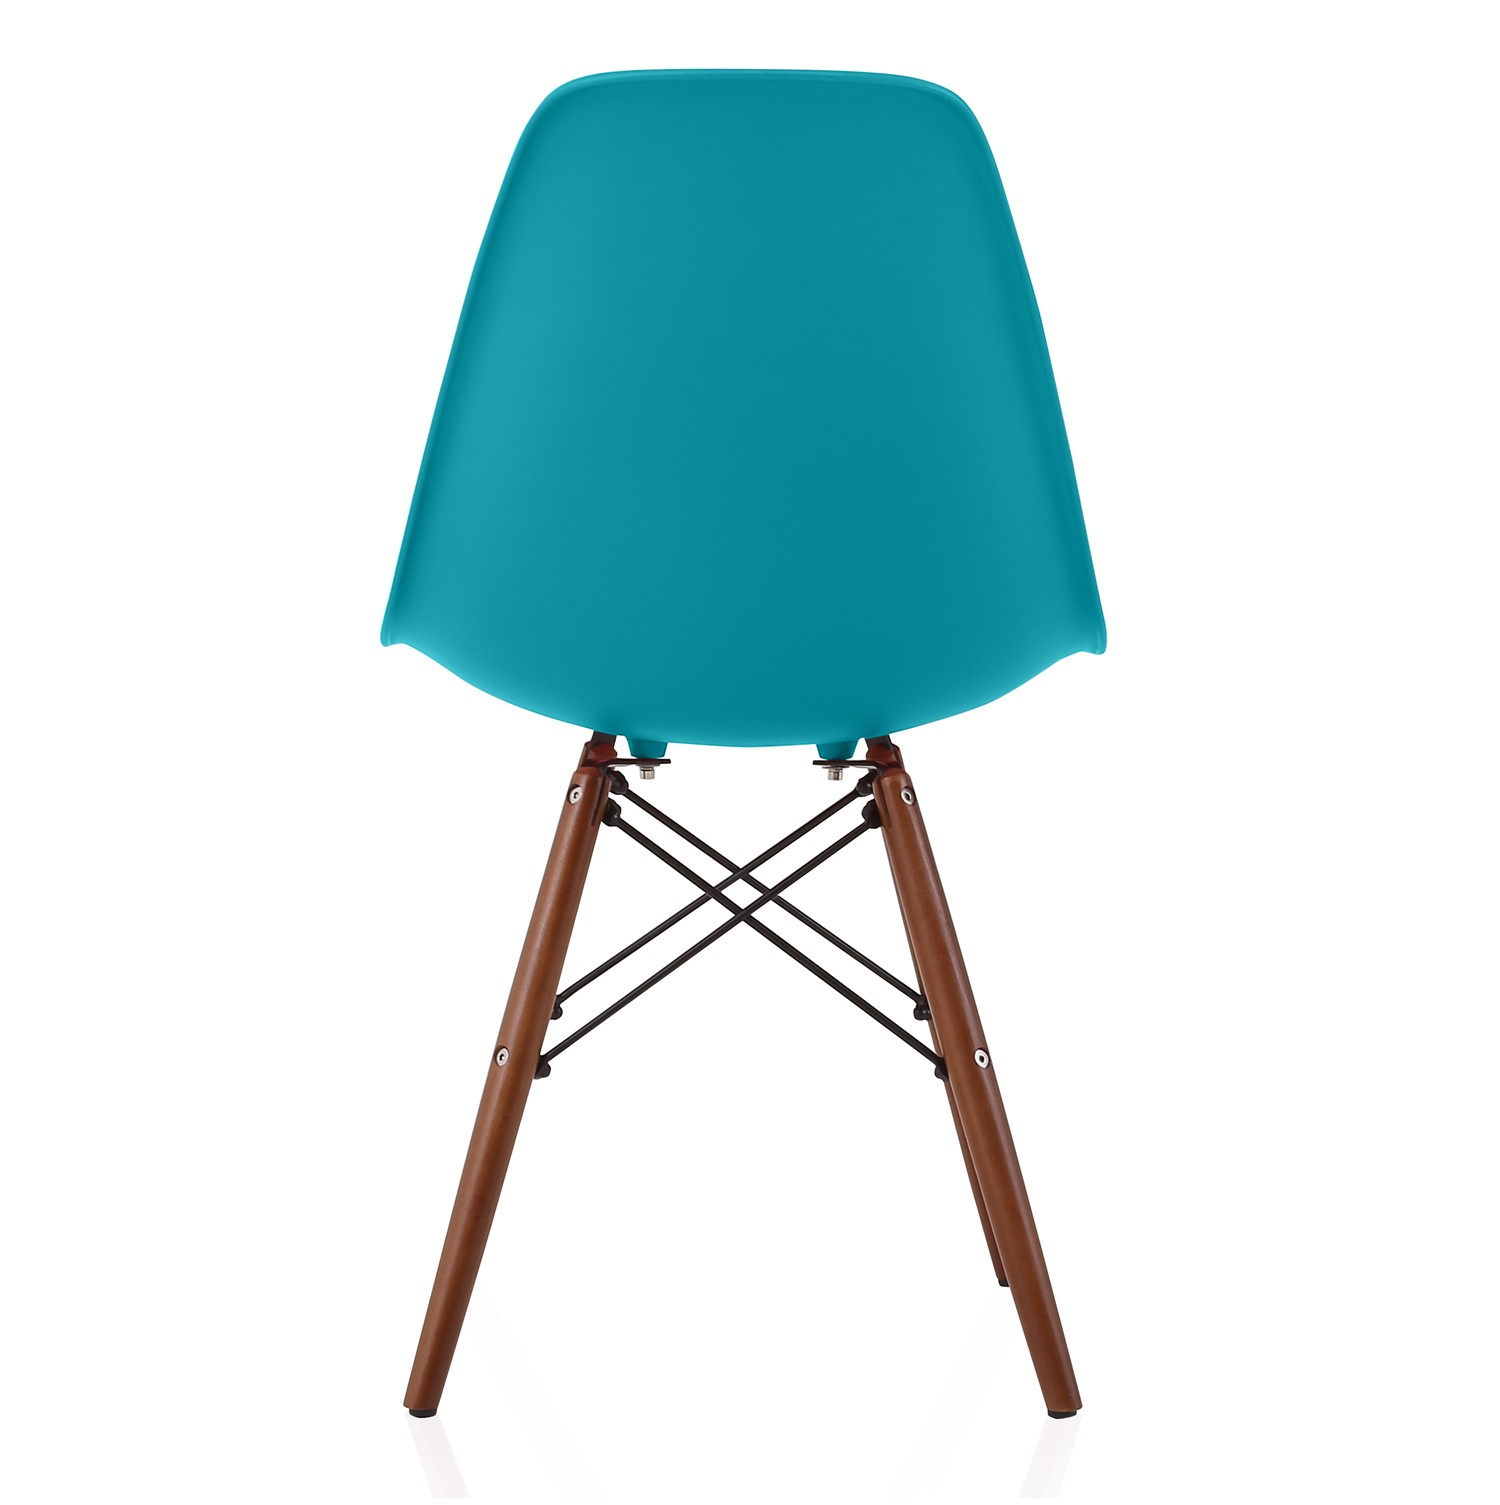 Nature Series Teal Blue Eames Style DSW Molded Plastic Dining Side